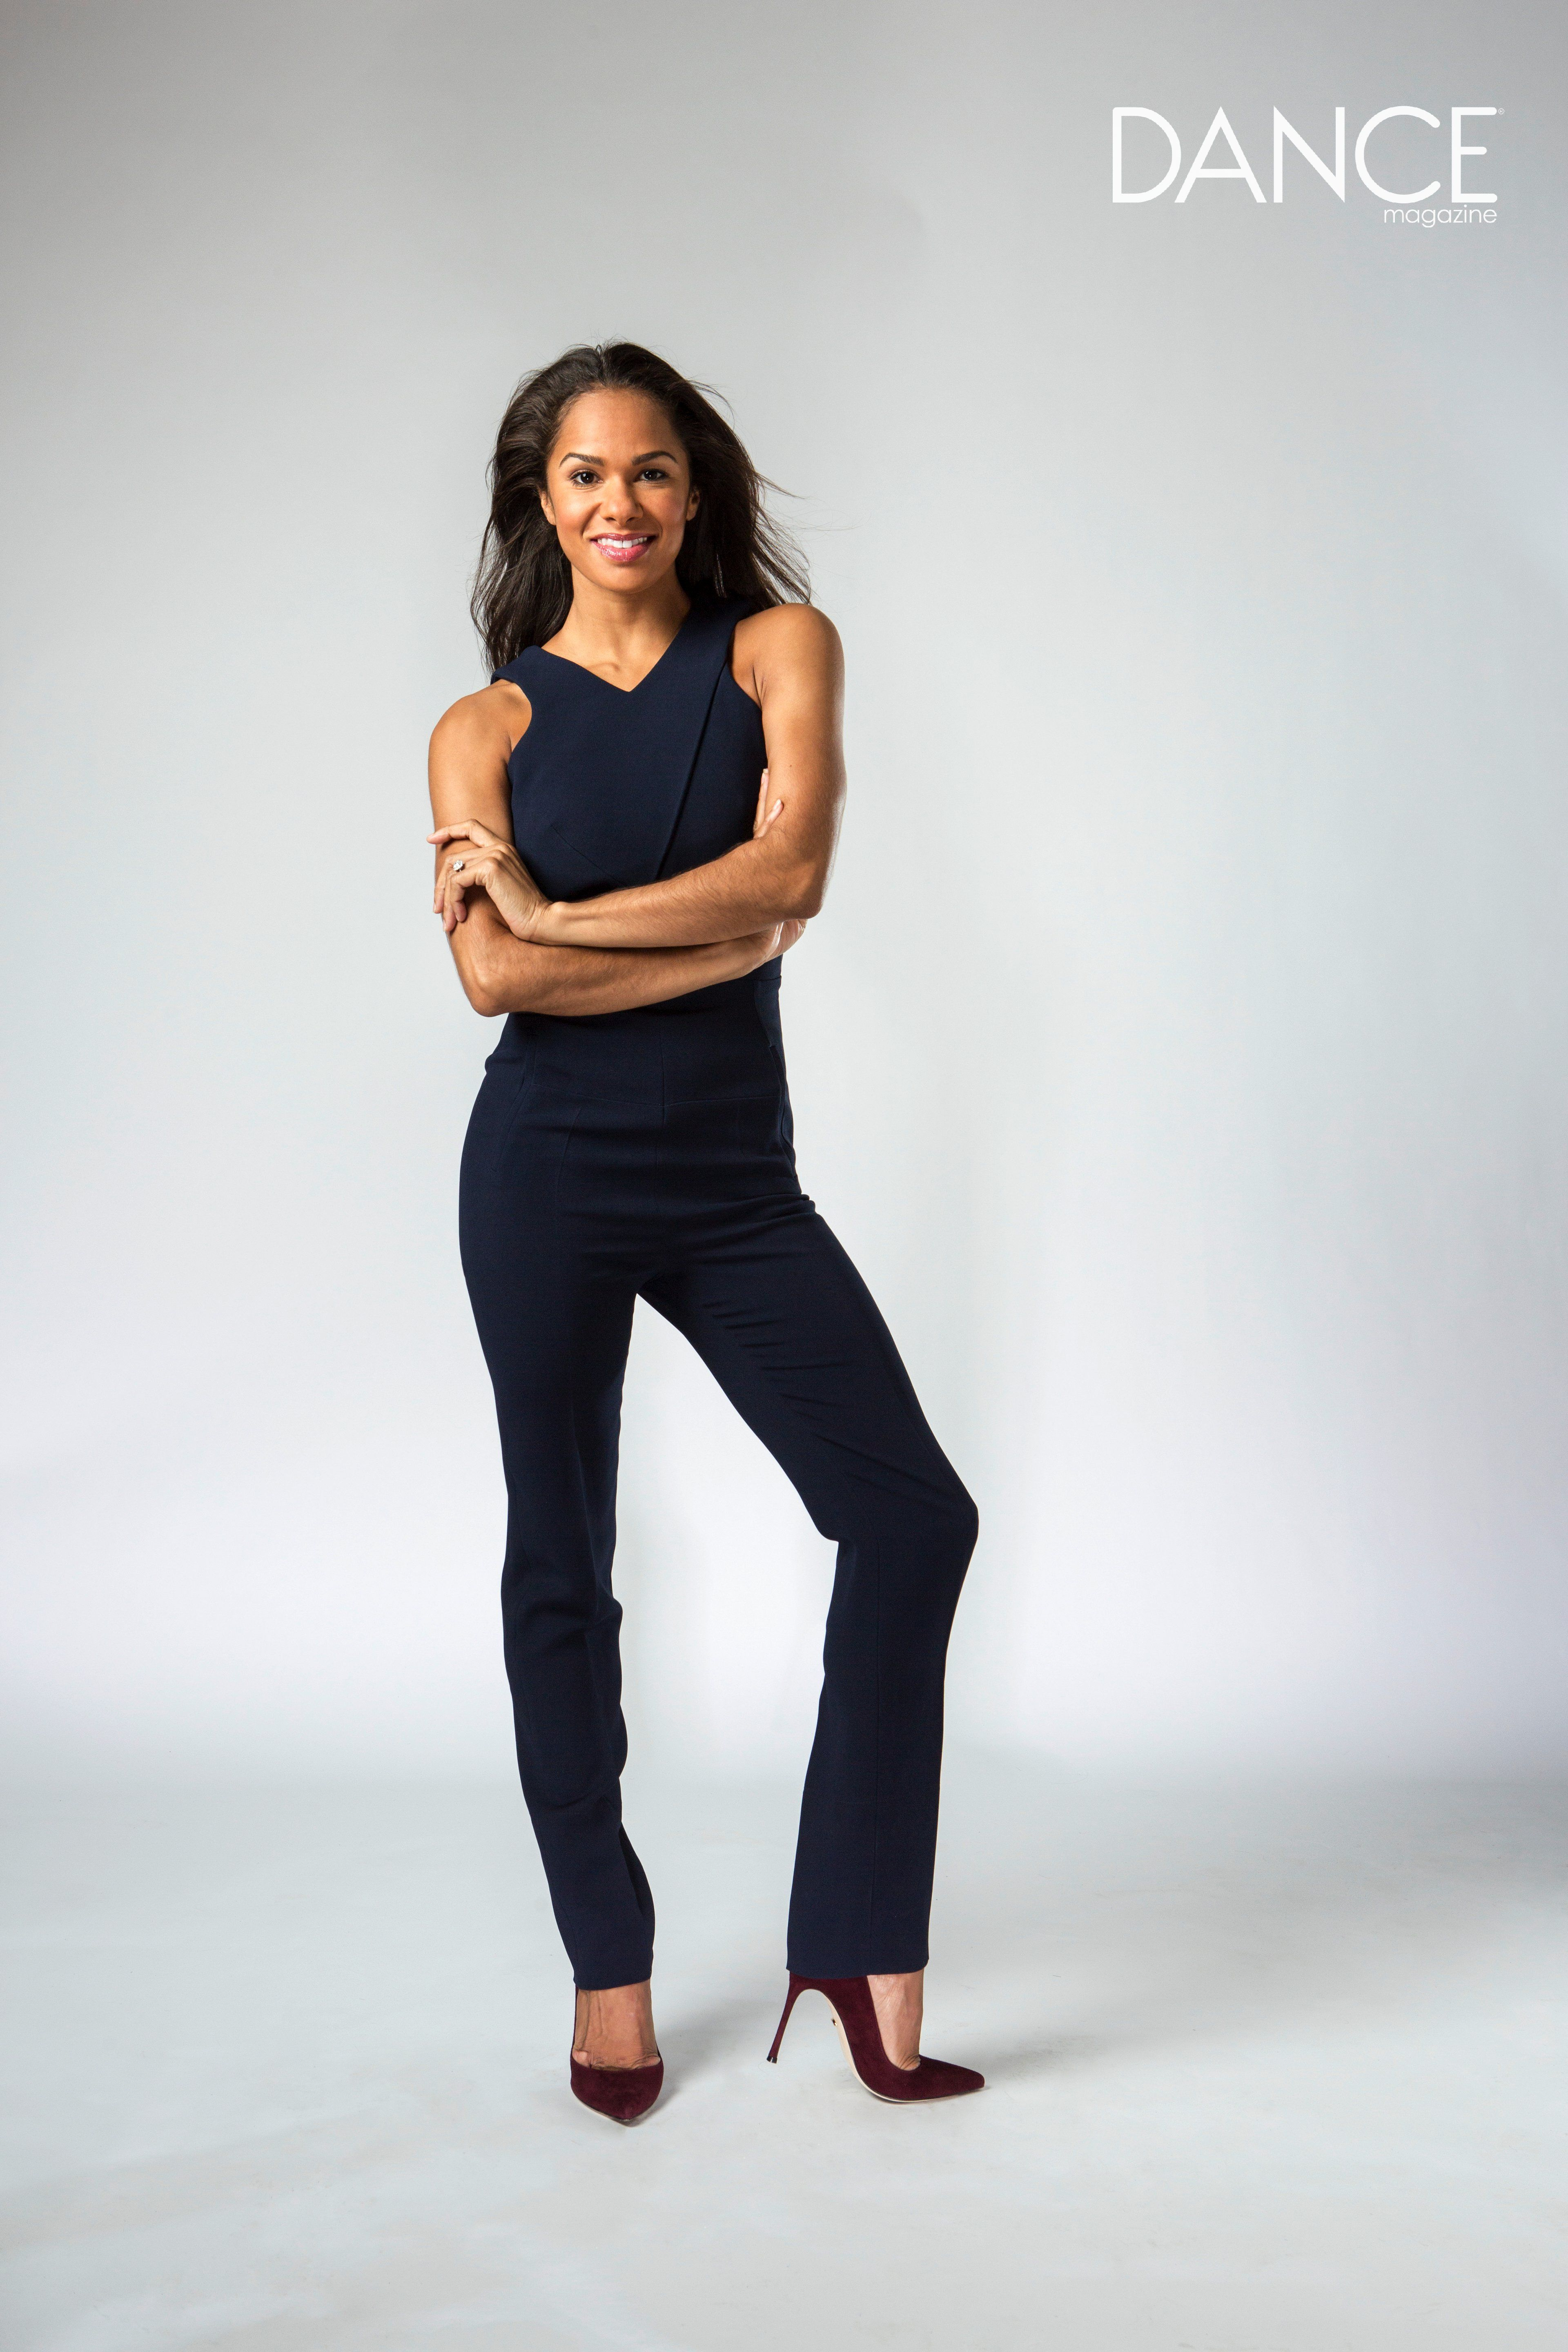 Behind the Scenes with Misty Copeland